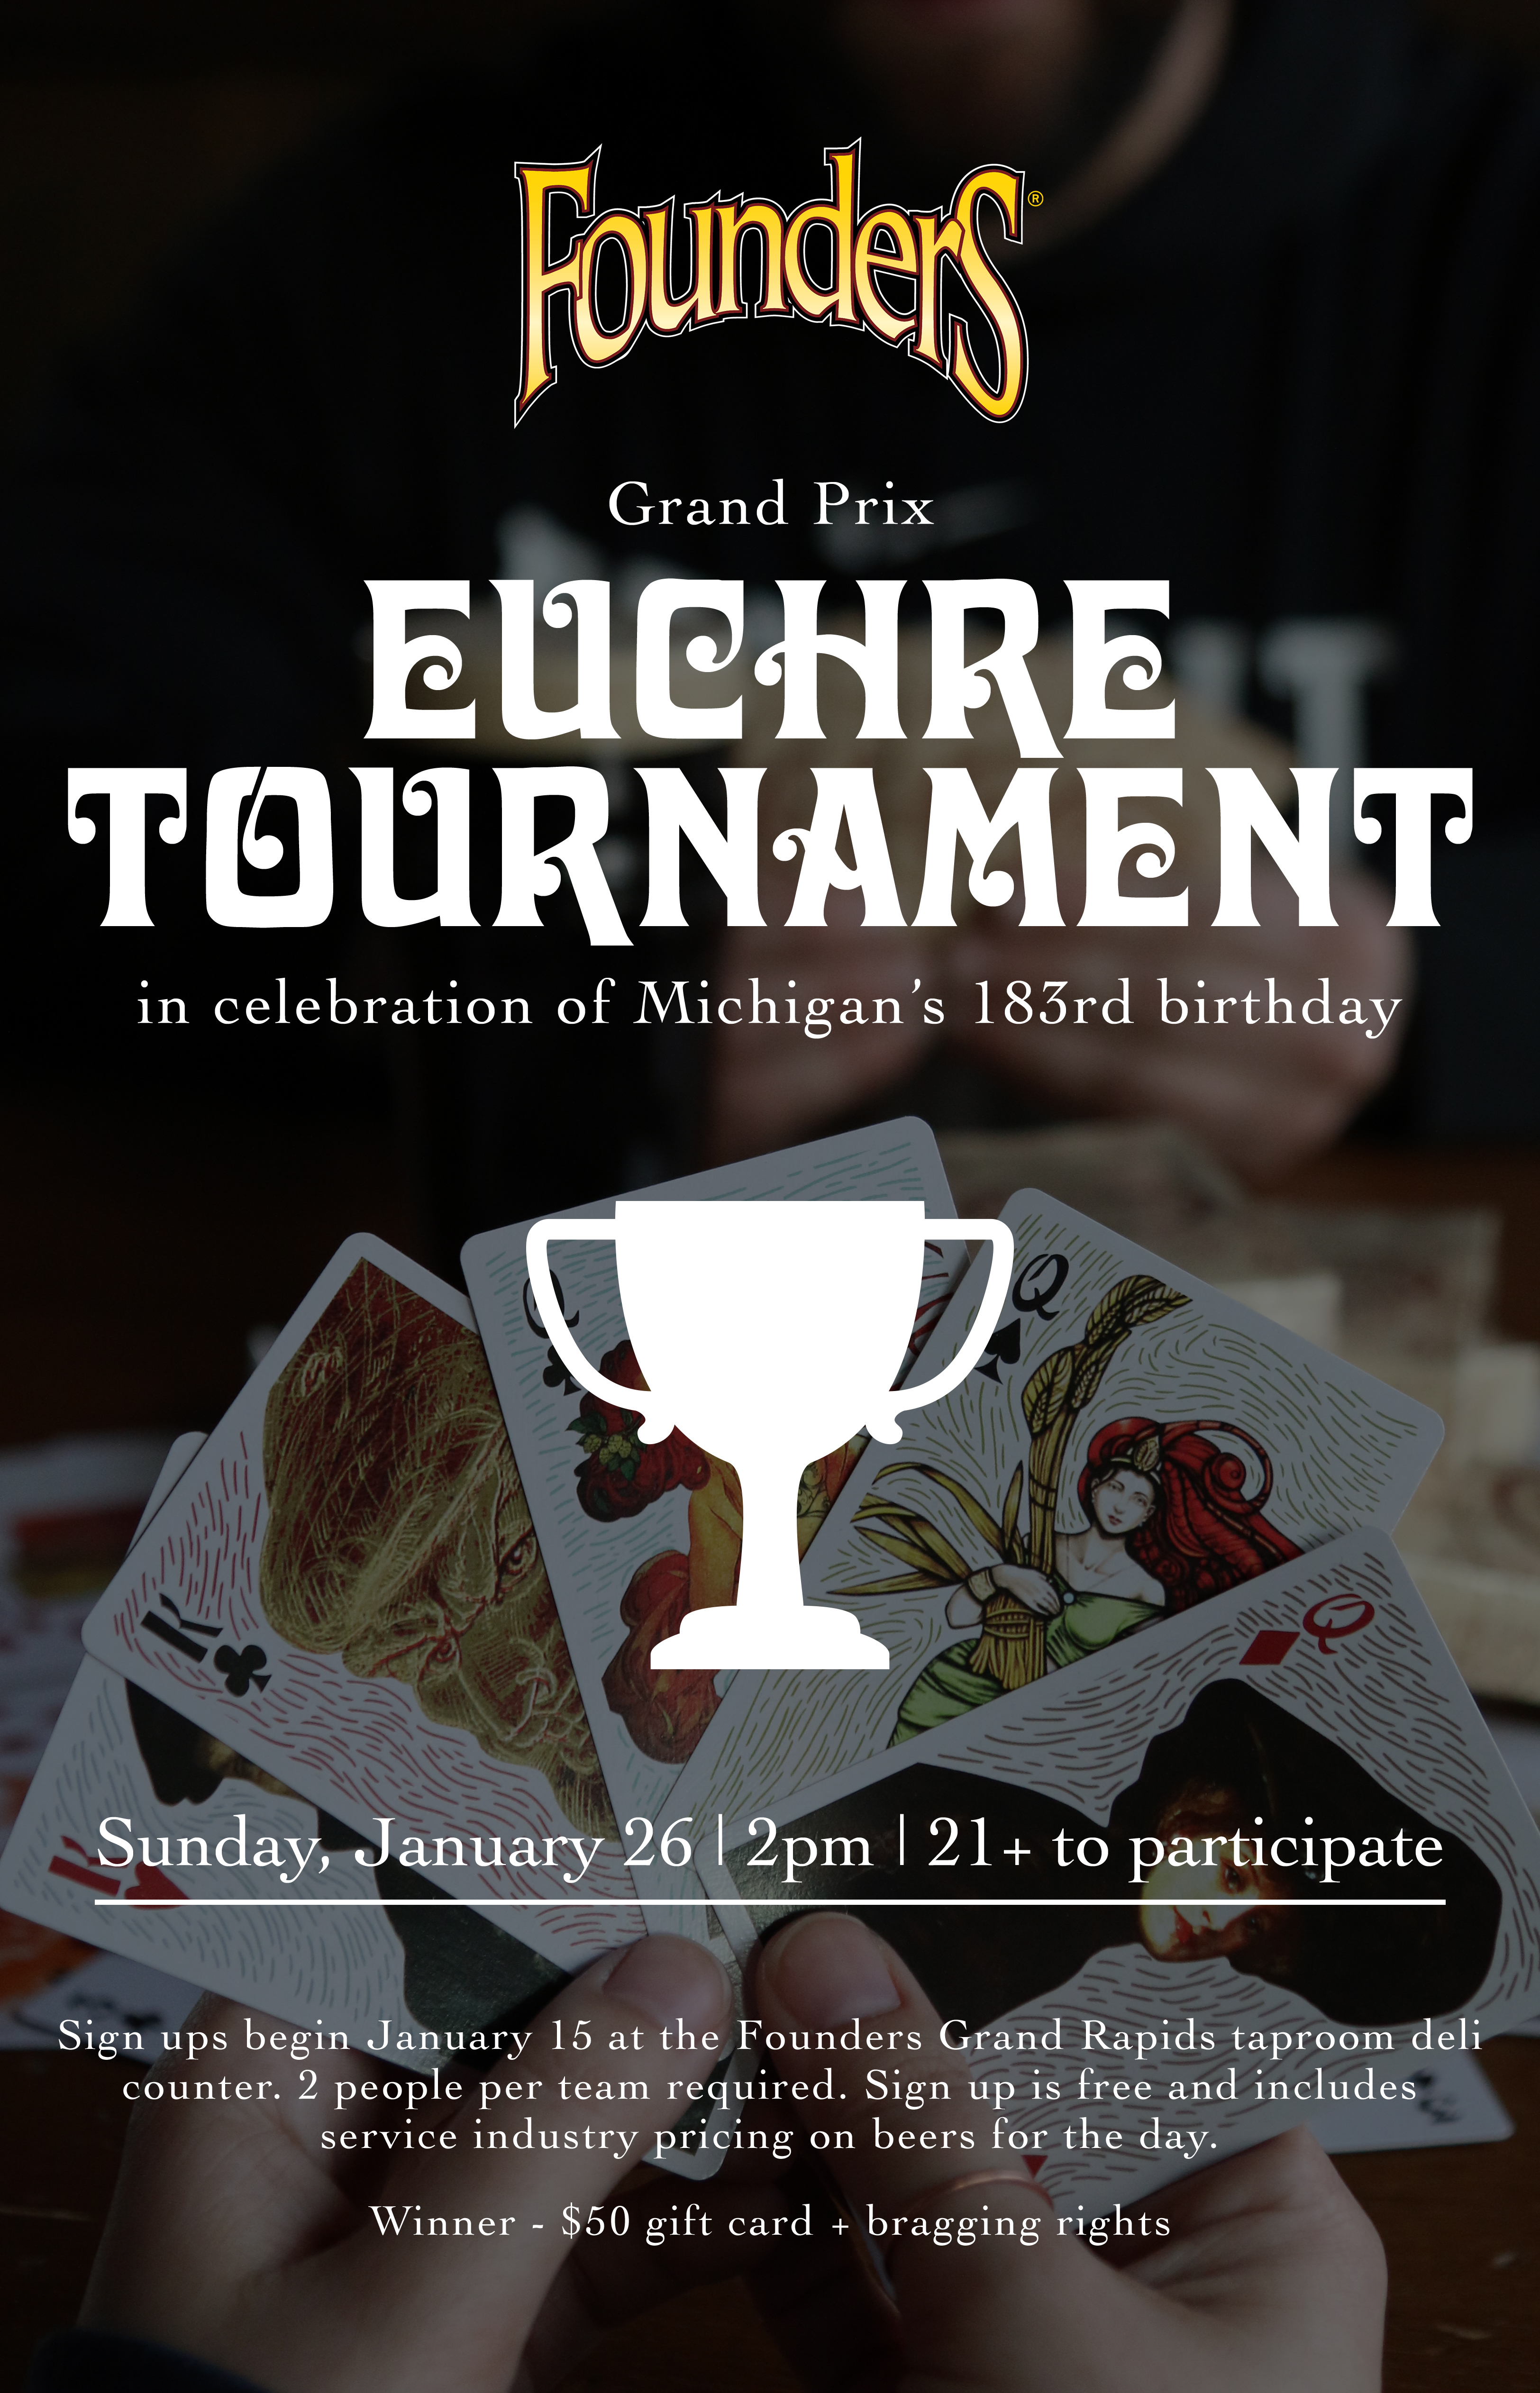 Euchre Tournament event poster hosted by Founders Brewing Co.